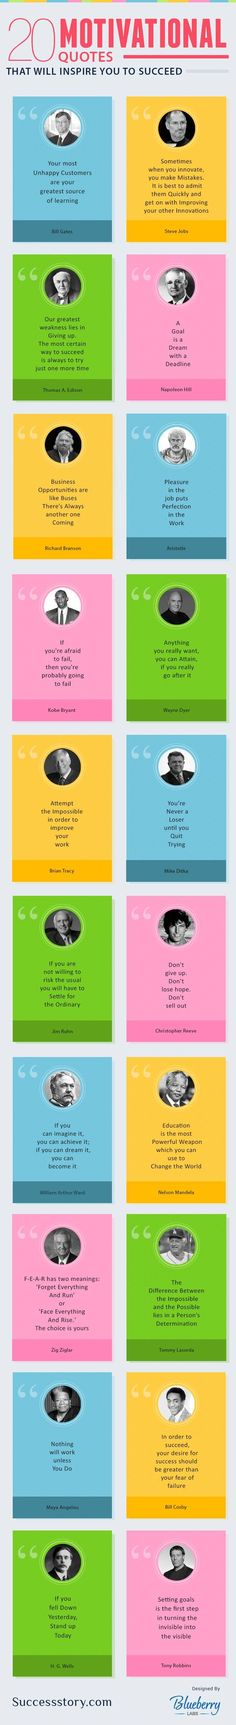 20 Motivational Quotes from Legendary Entrepreneurs, Leaders and Visionaries | Inspirational Quotes and Sayings - Infographic #quotes